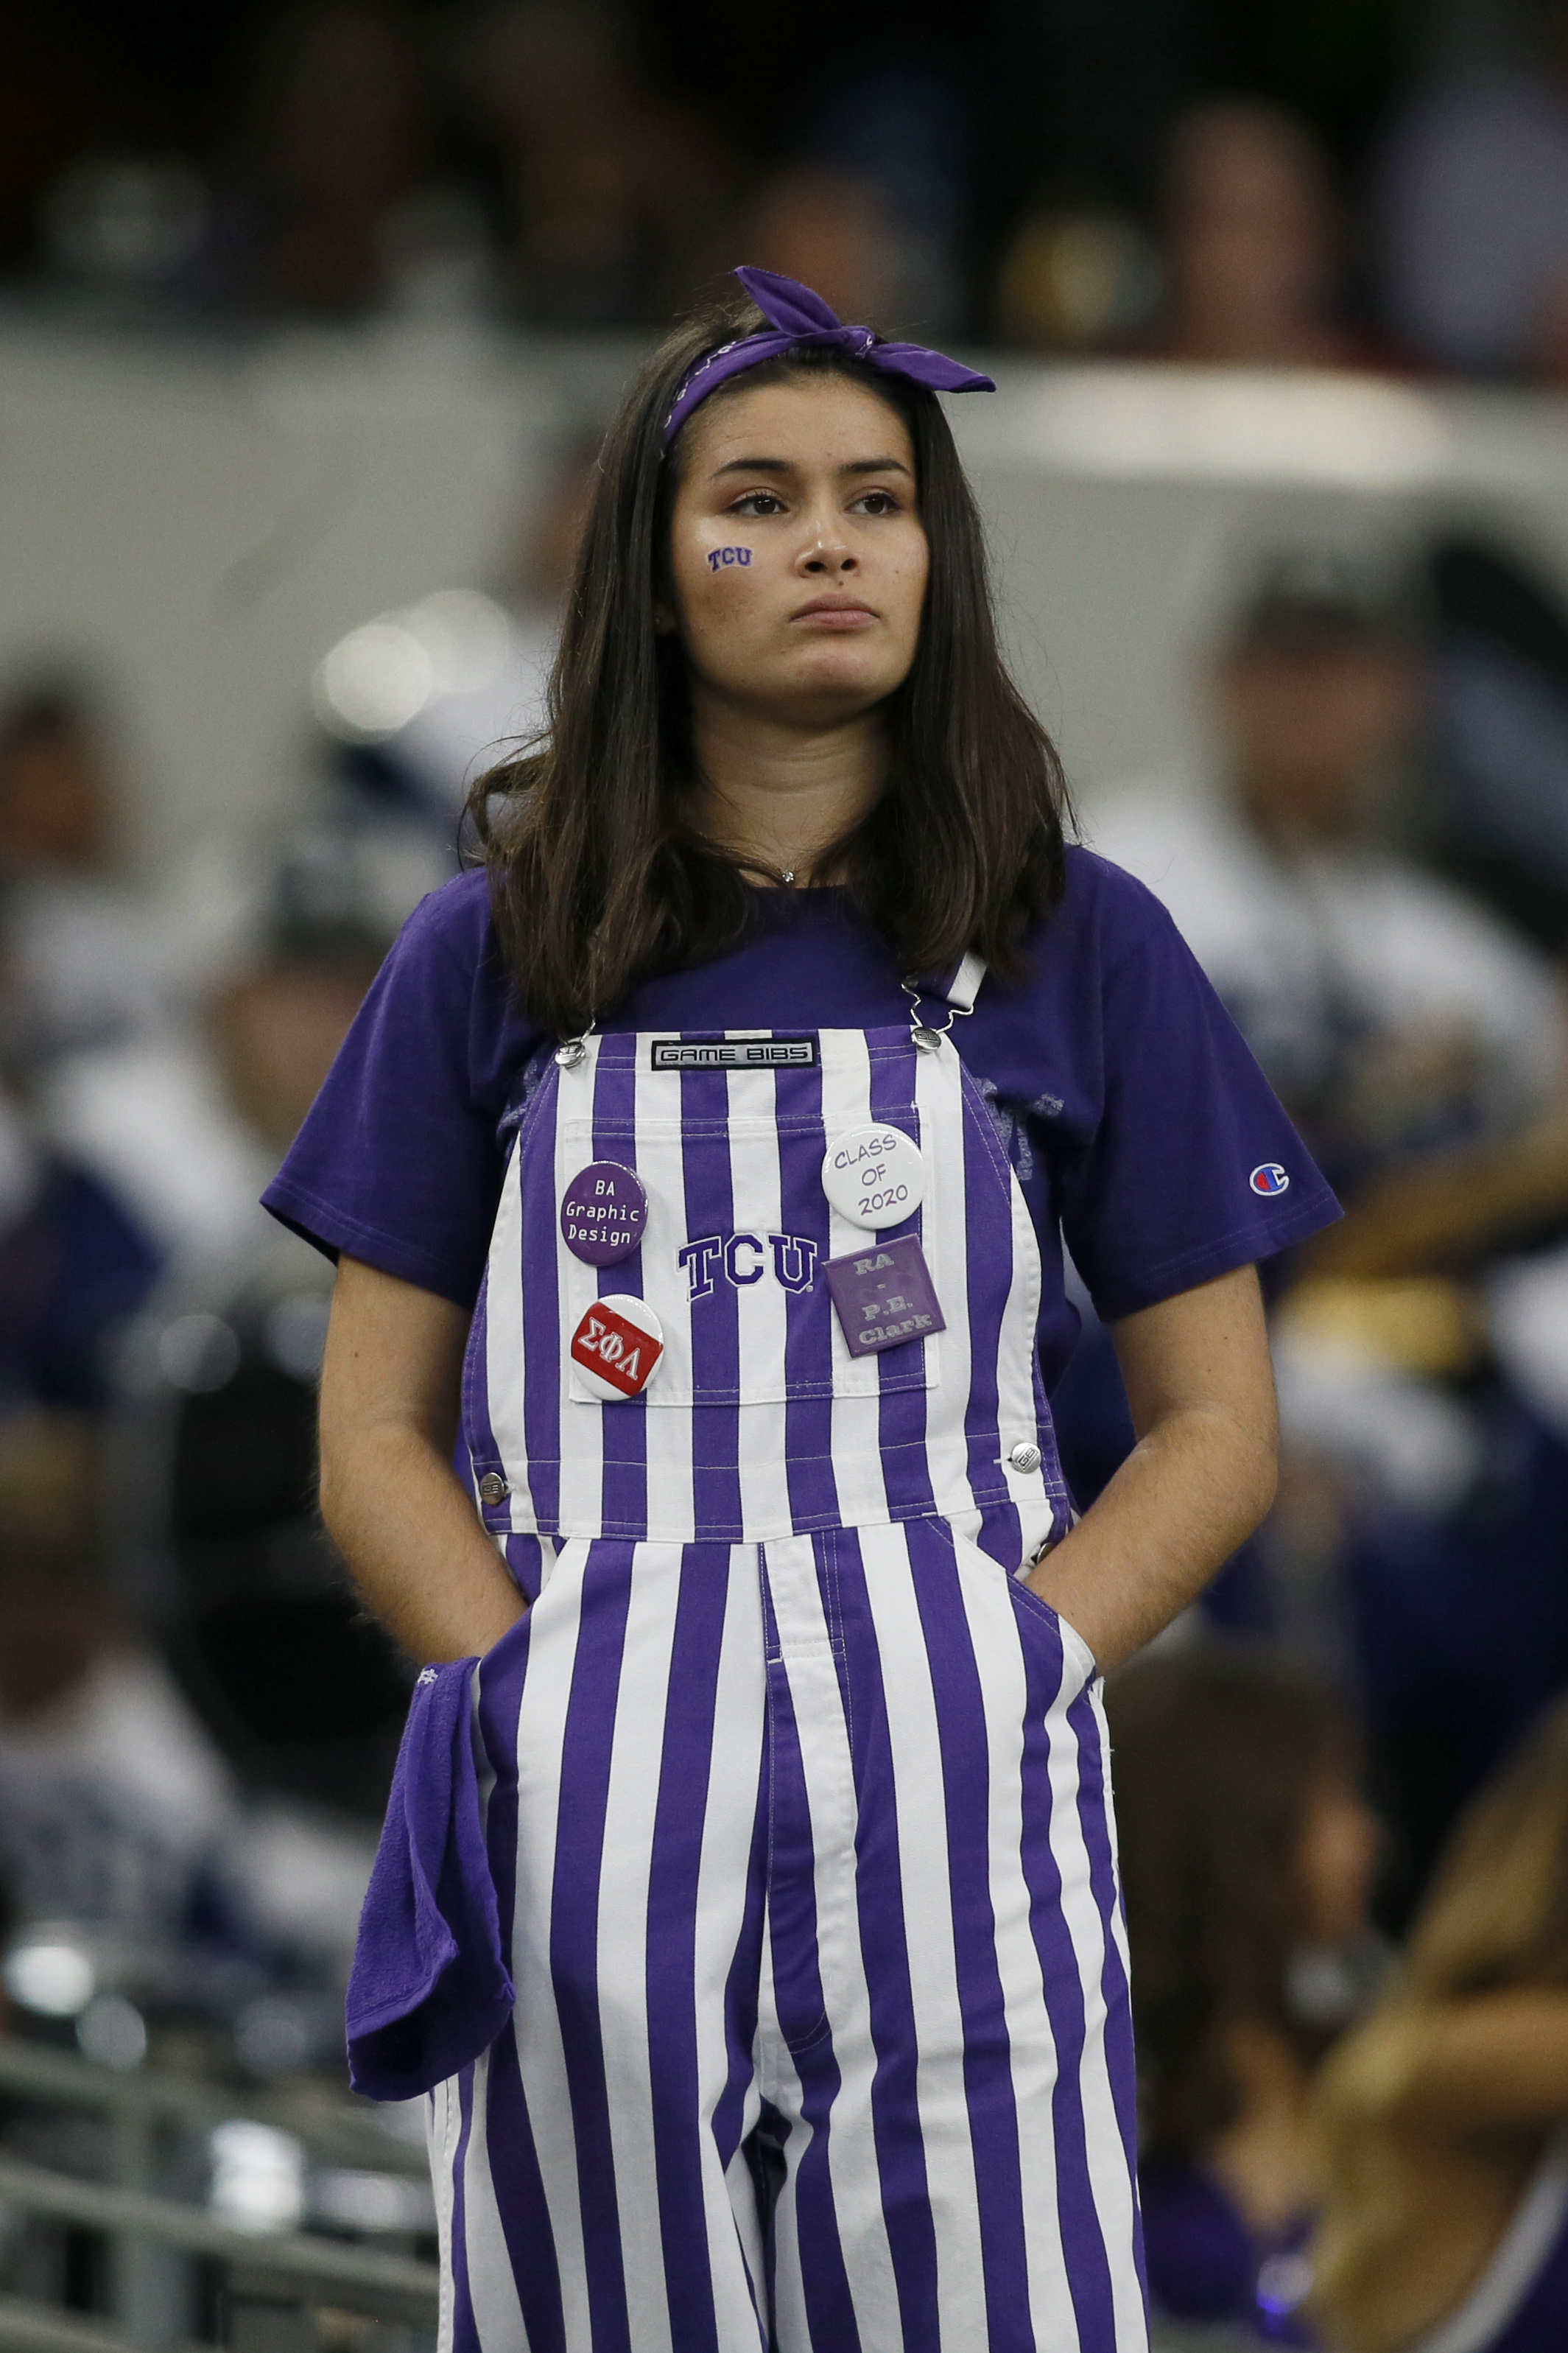 A TCU Horned Frogs fan in the stands during the game against the Oklahoma Sooners in the Big 12 Championship game, December 2, 2017